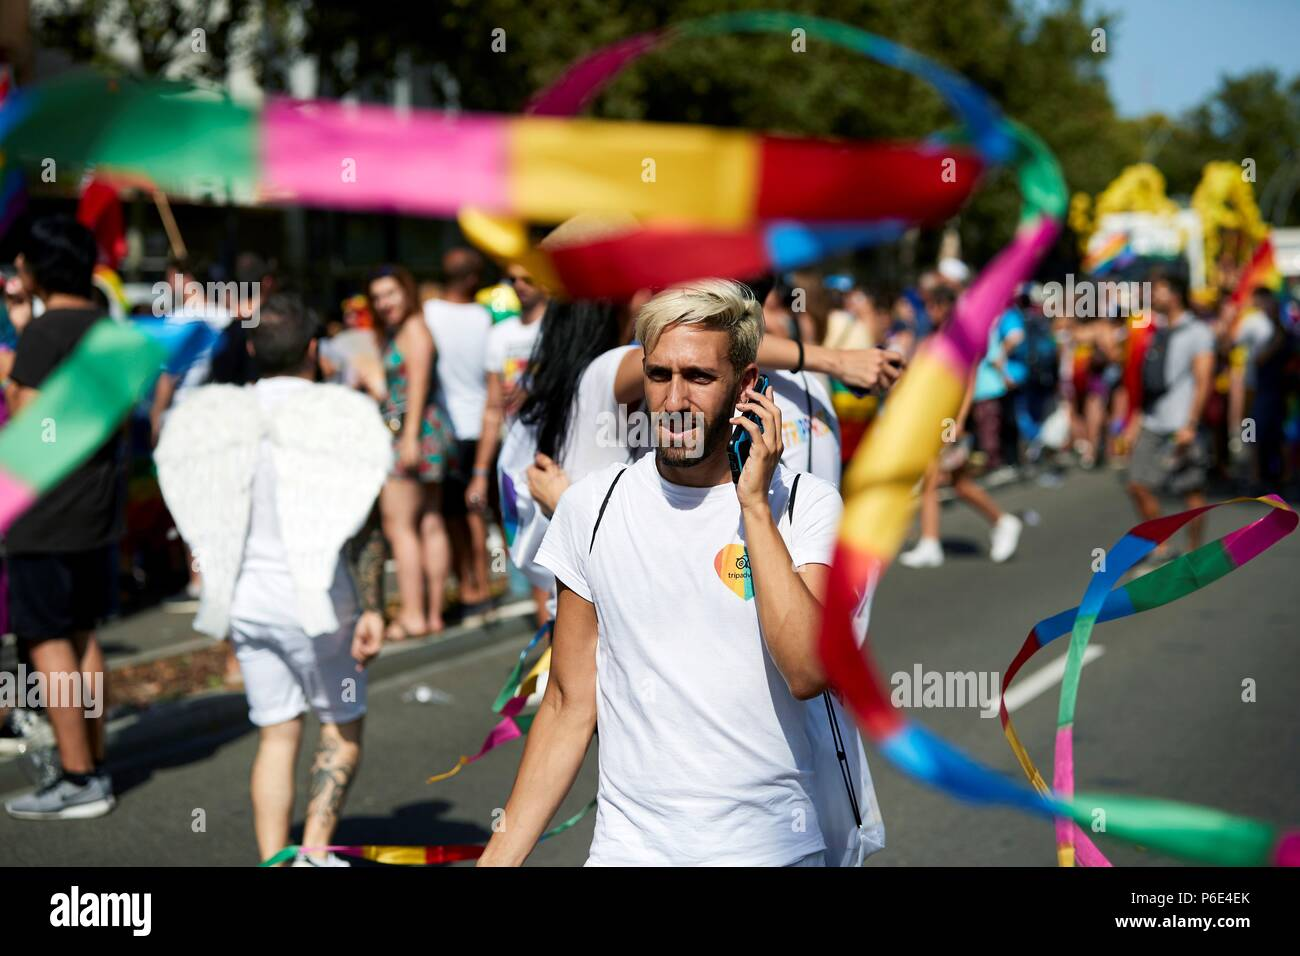 Barcelona, Spain. 30th June, 2018. Thousands attend the Pride 2018 parade in Barcelona, Spain, 30 June 2018. This year Barcelona has dedicated it's Pride Parade to LGTBI refugees. Credit: Alejandro Gardia/EFE/Alamy Live News - Stock Image